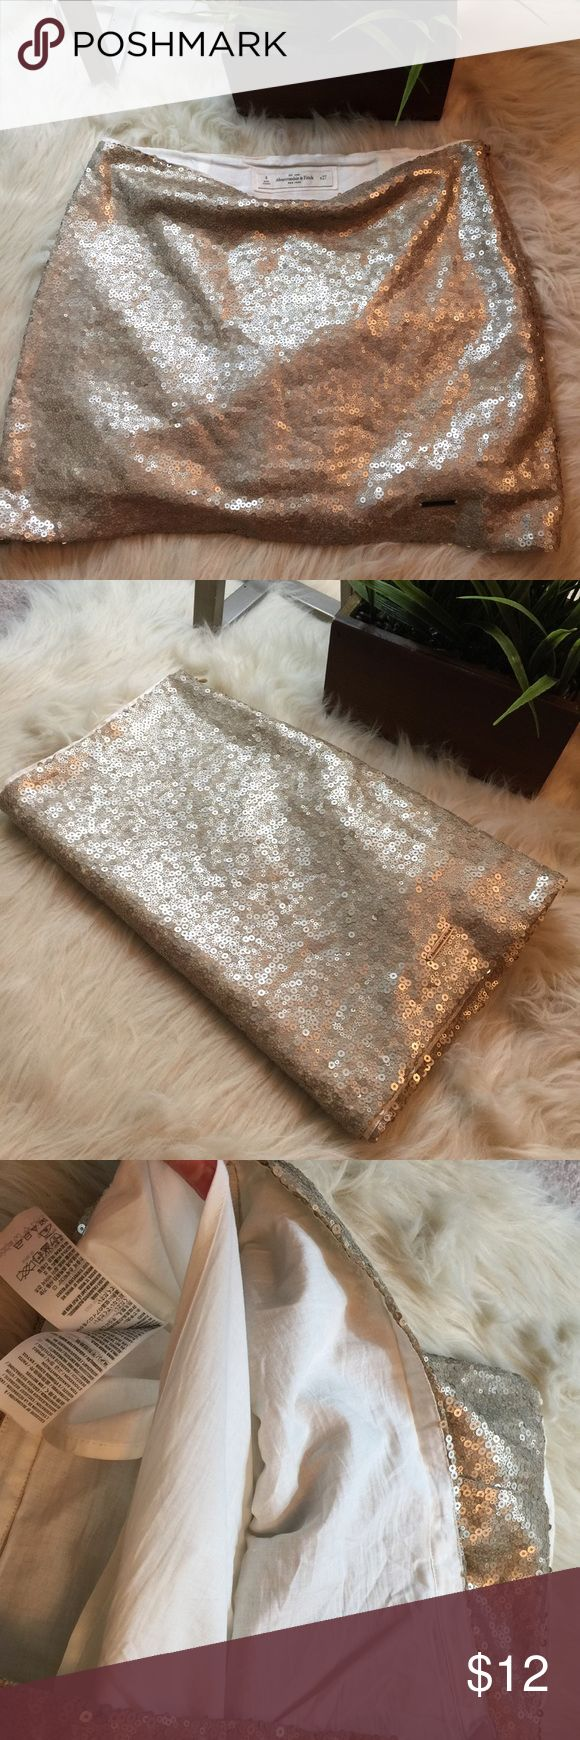 """Matte sequin mini skirt by A&F Gold sequin mini skirt. Approx 12"""" long. W27 size 4 and fits true to size. Perfect condition. Fully lined. Abercrombie & Fitch Skirts Mini"""